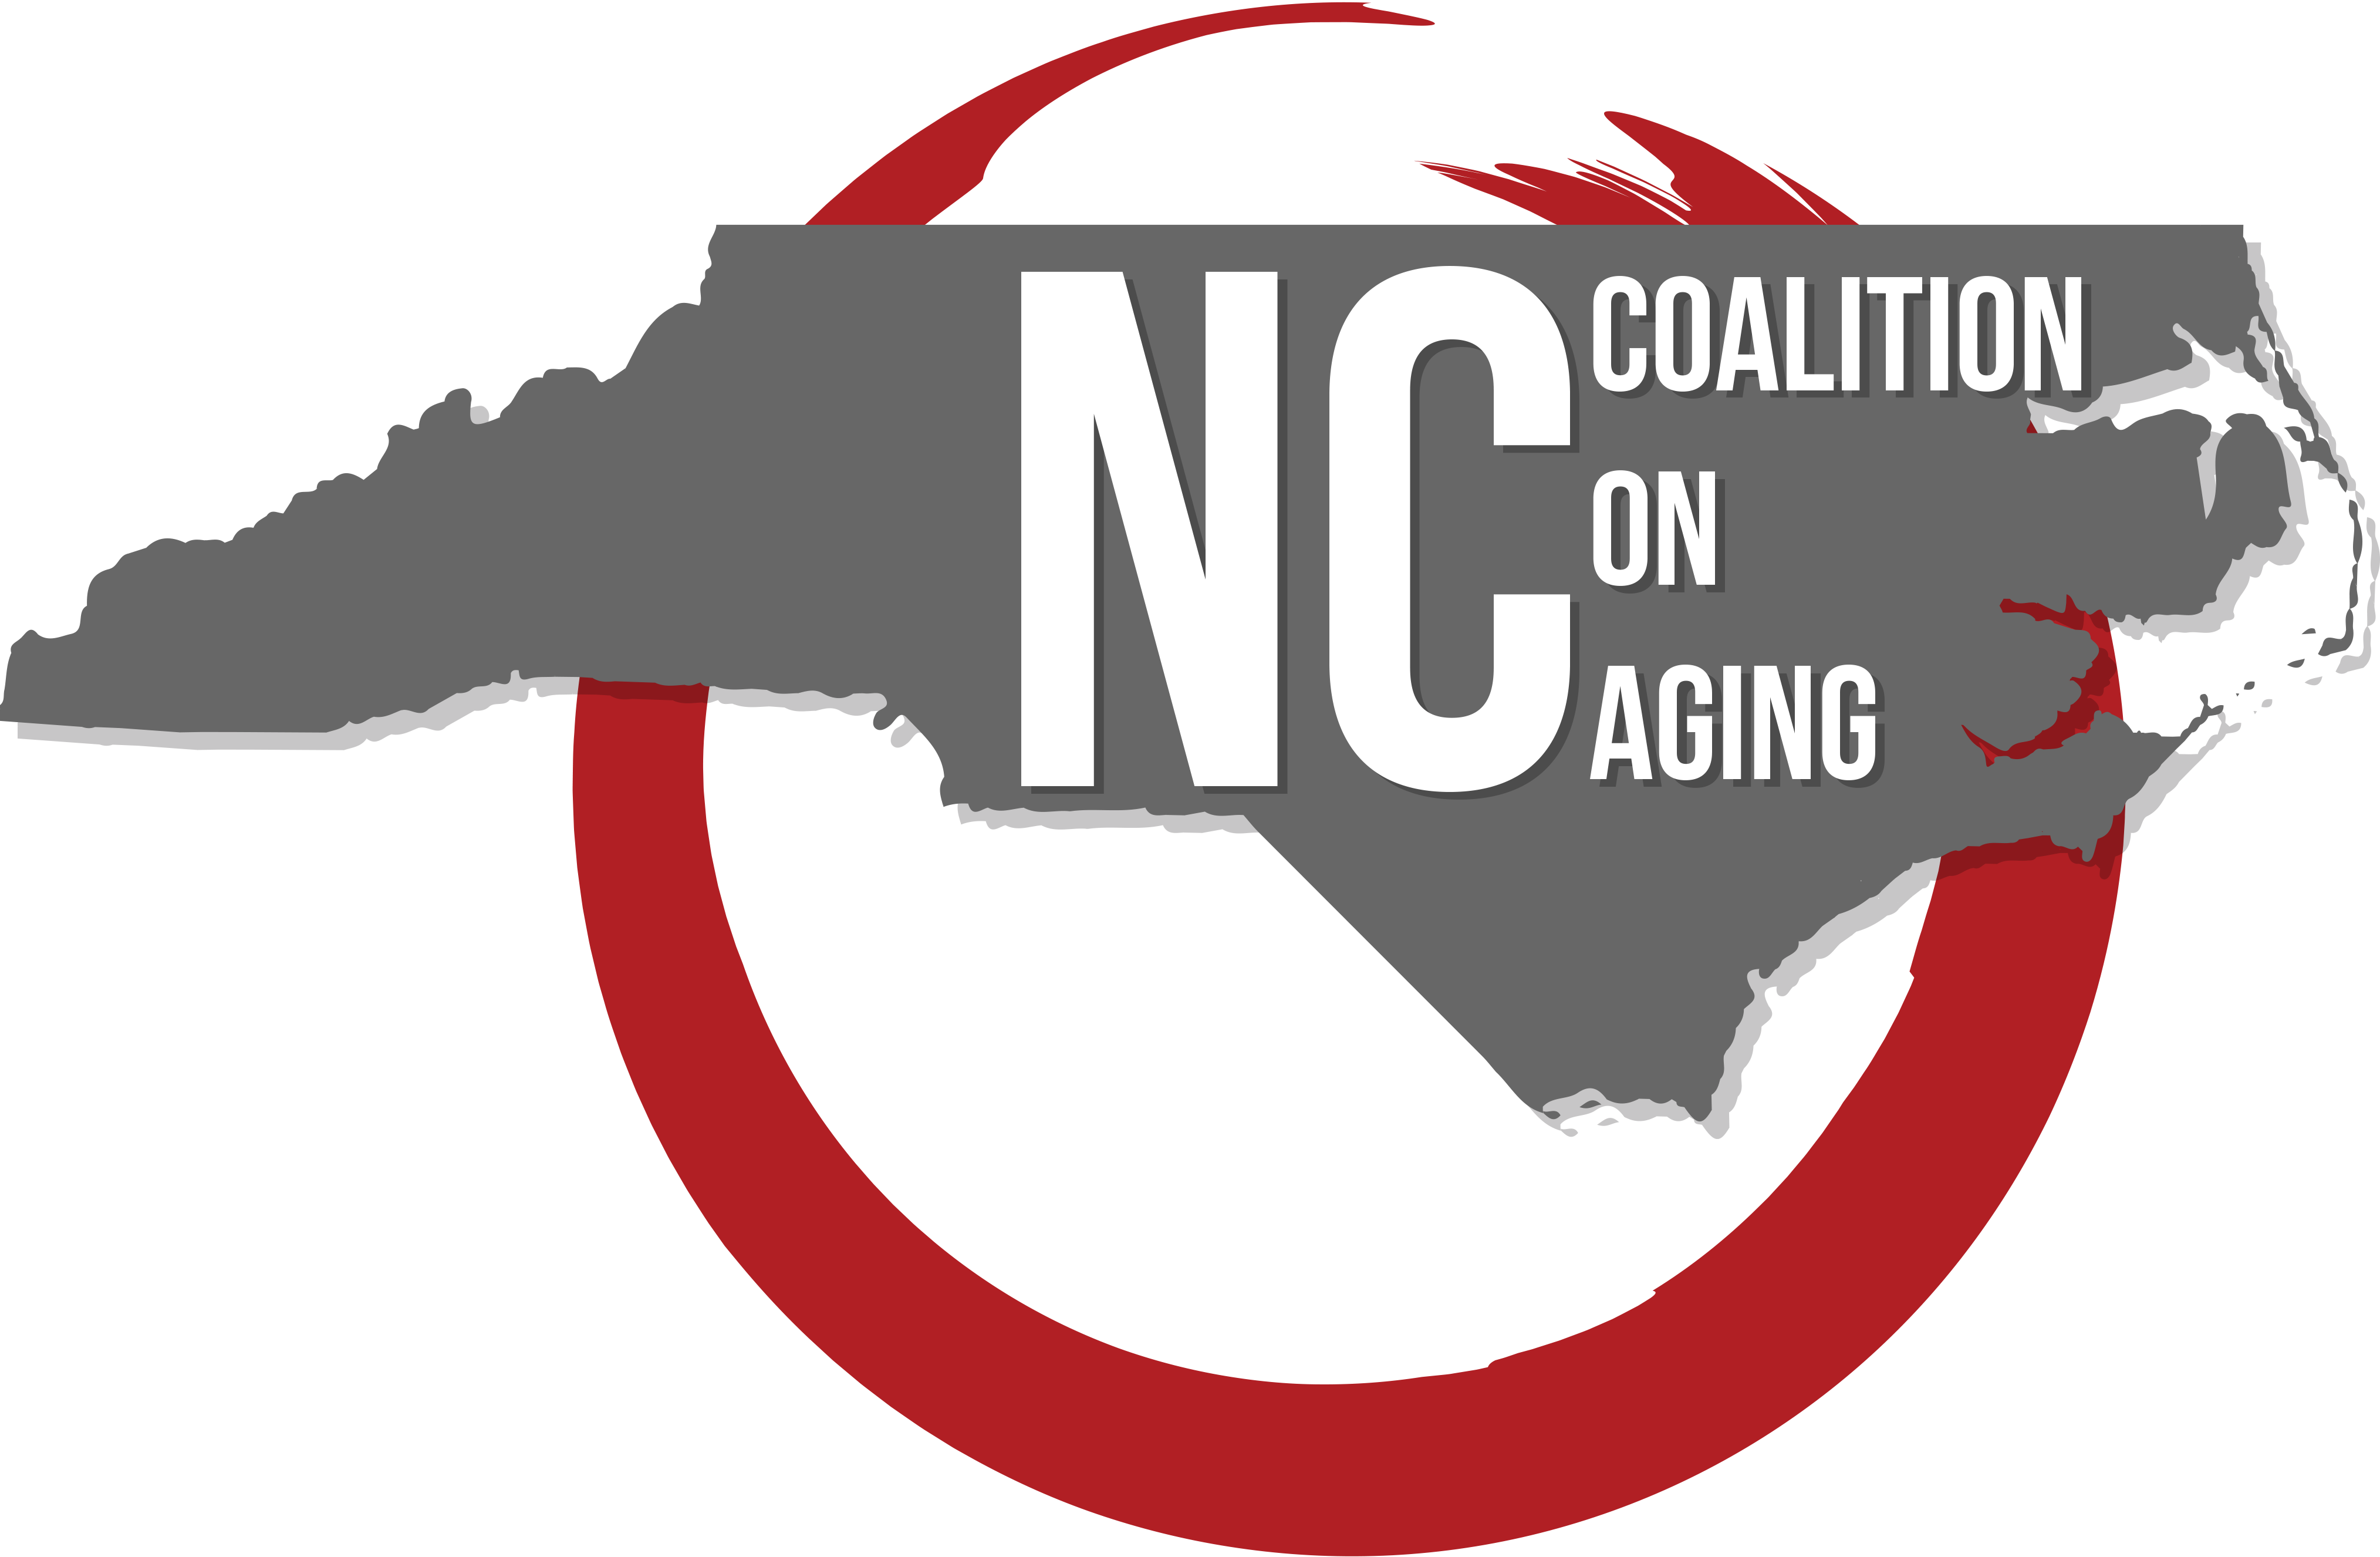 NC Coalition on Aging